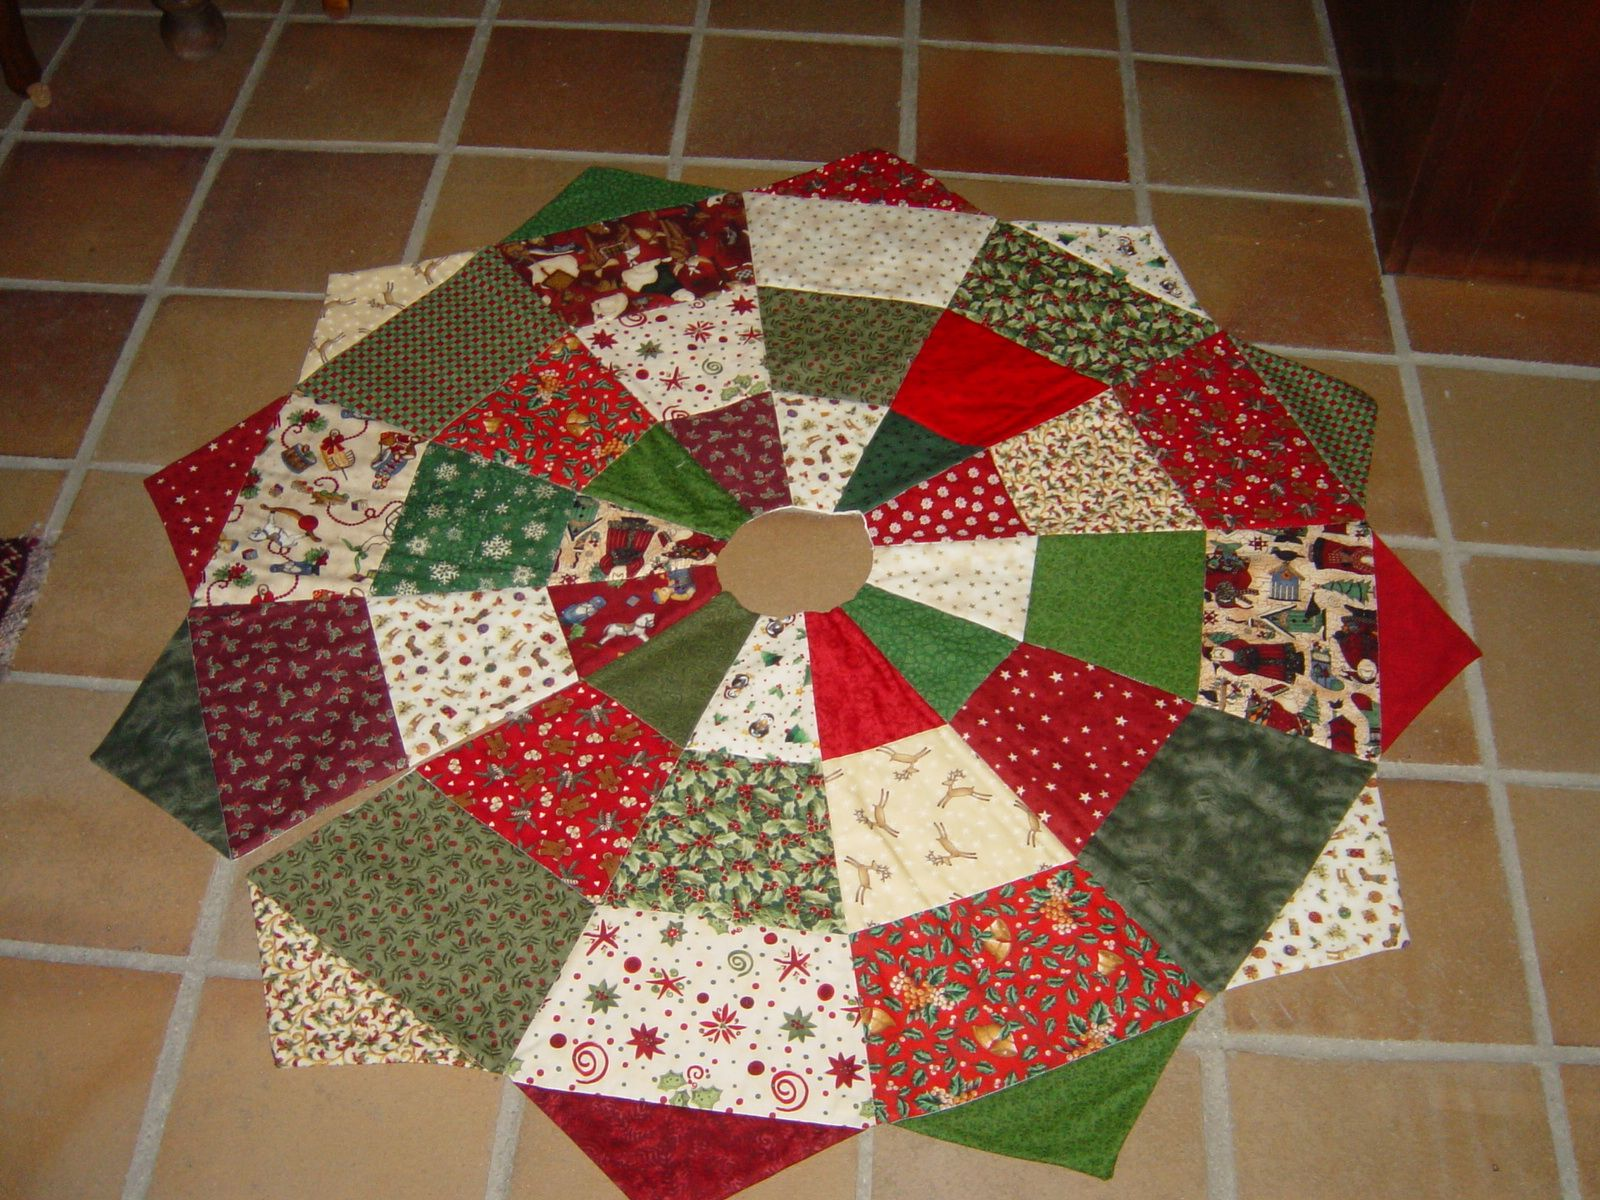 Quilted Christmas Tree Skirt Pinterest : Christmas tree skirt Christmas Pinterest